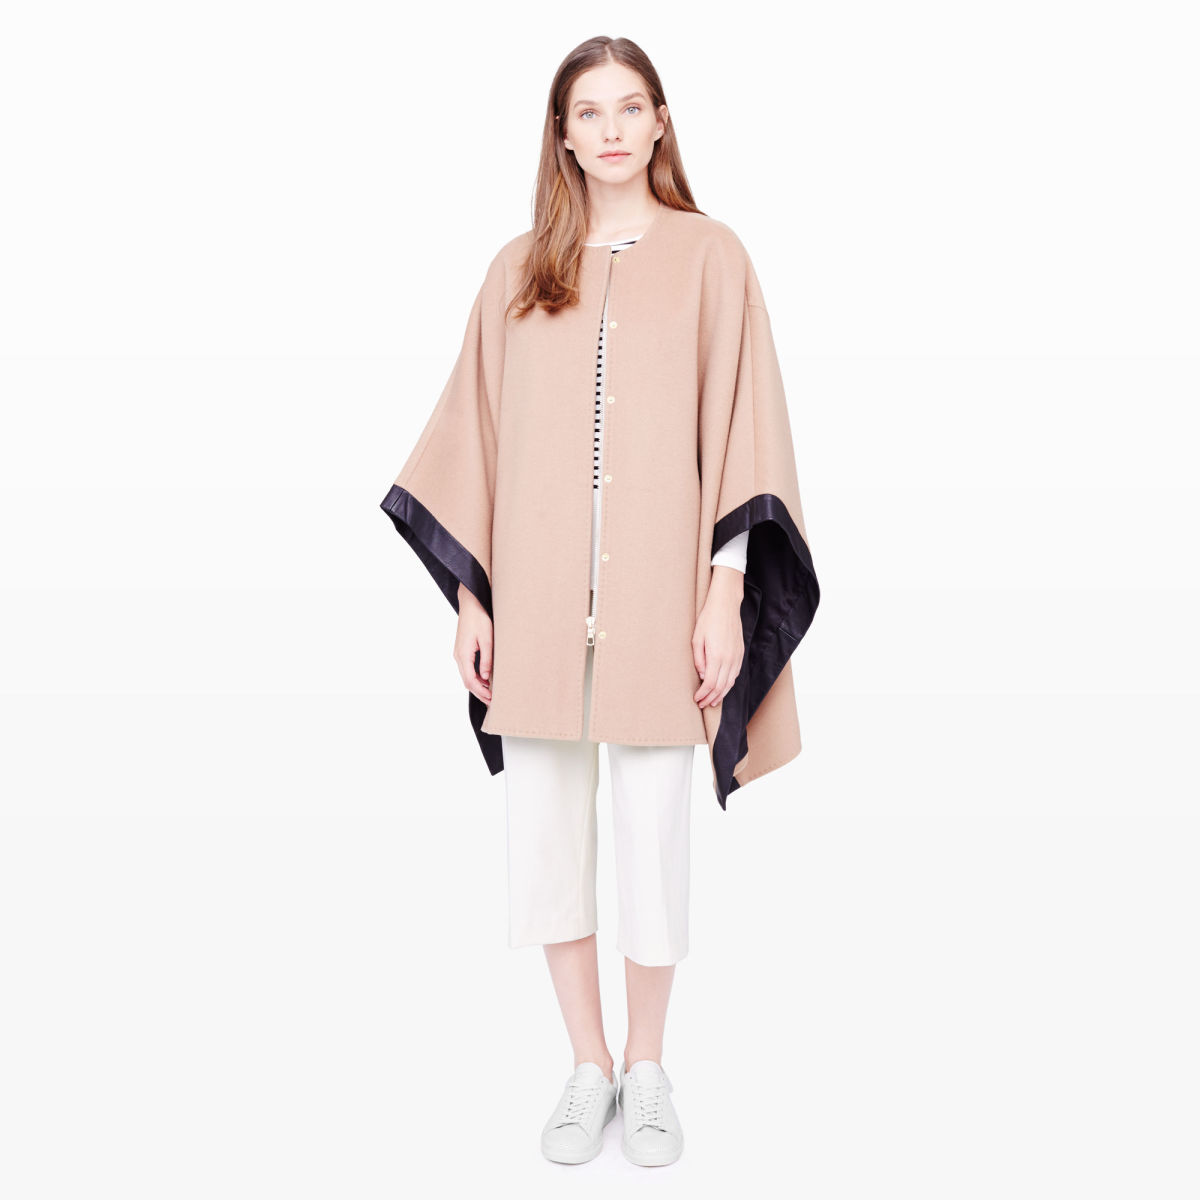 Club Monaco Carly cape, now $329, available at Club Monaco.